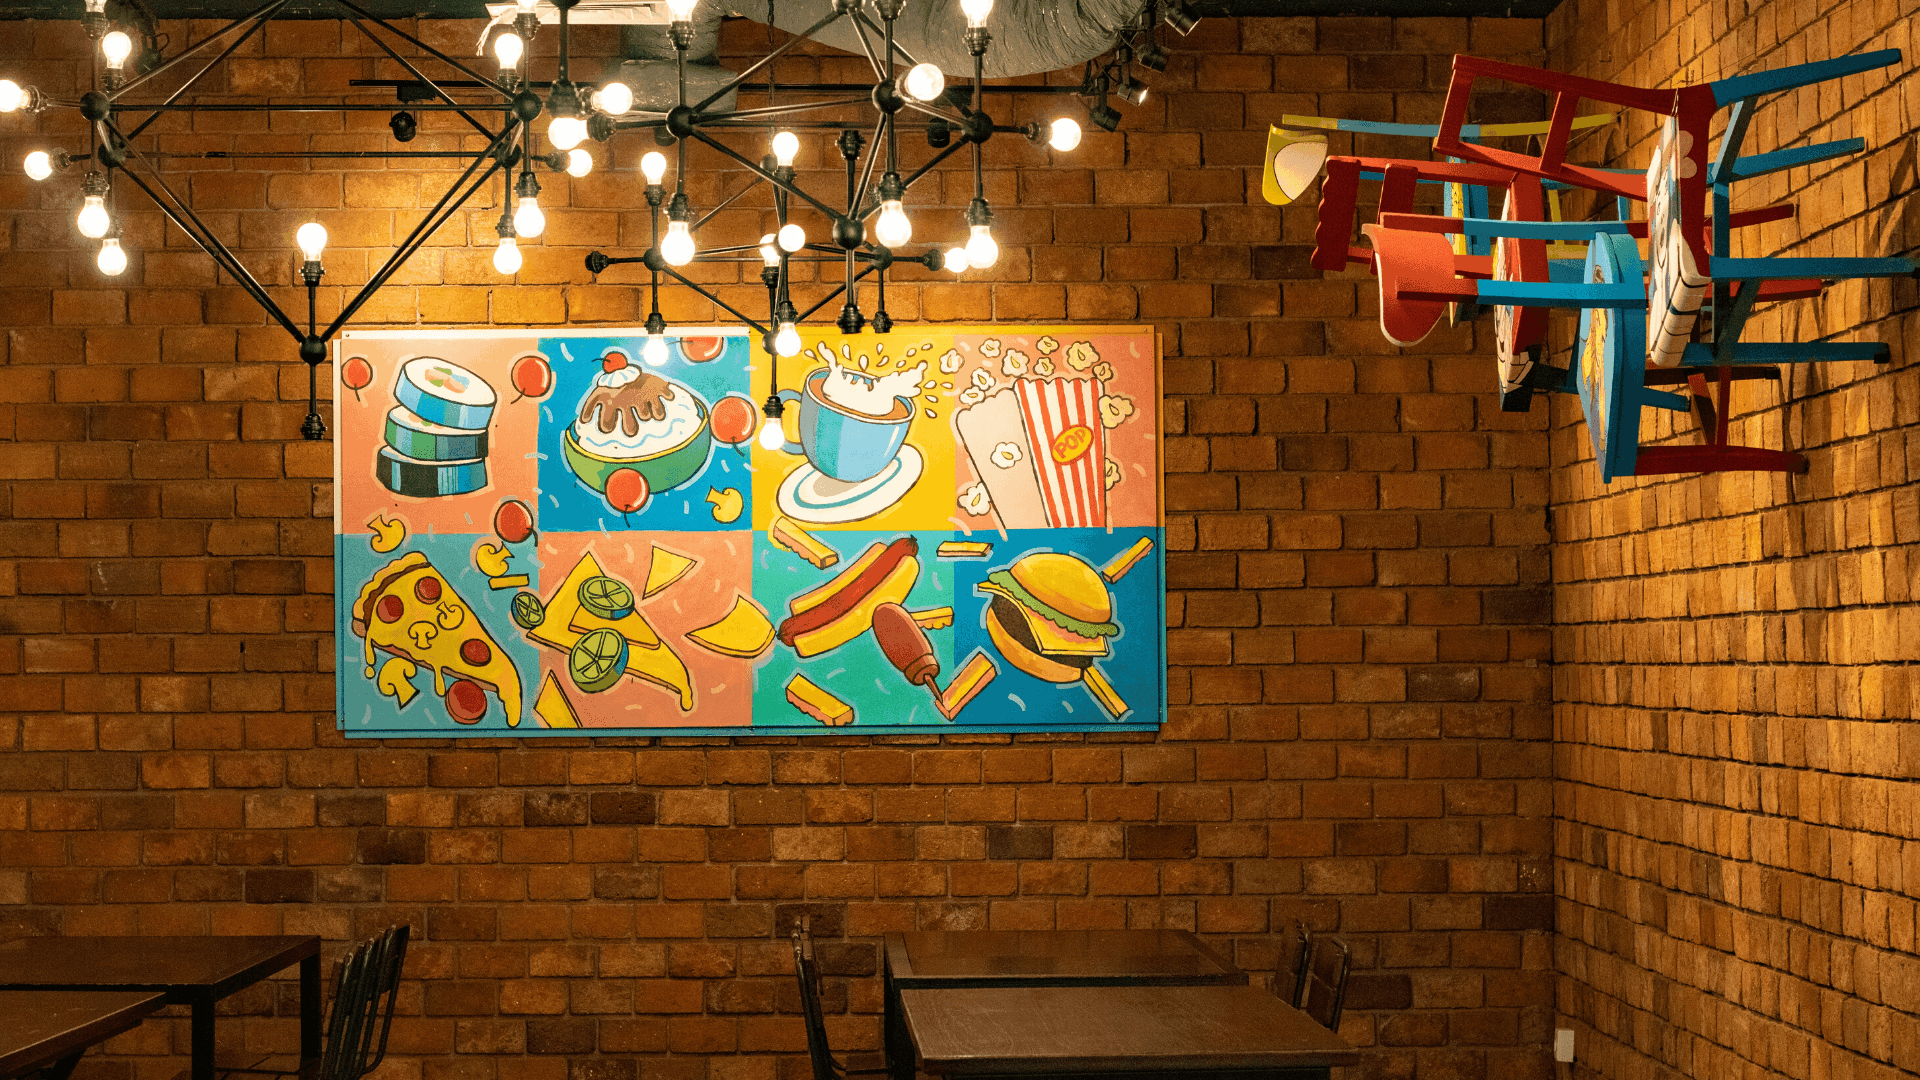 44 Unique Restaurant Ideas To Inspire Your Concept On The Line Toast Pos